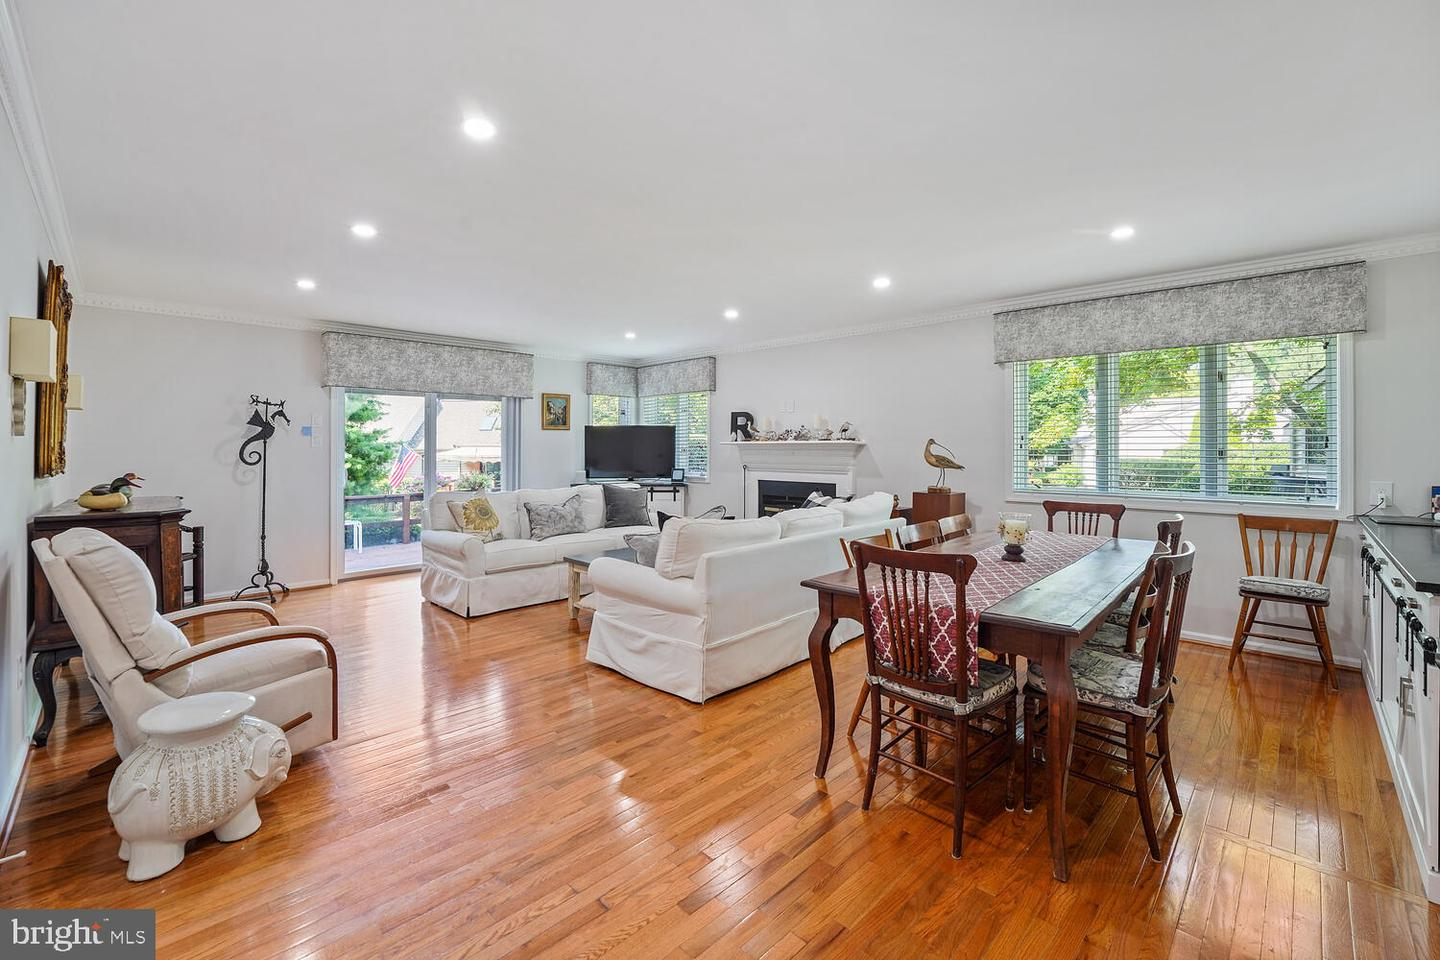 483 Eaton Way West Chester , PA 19380